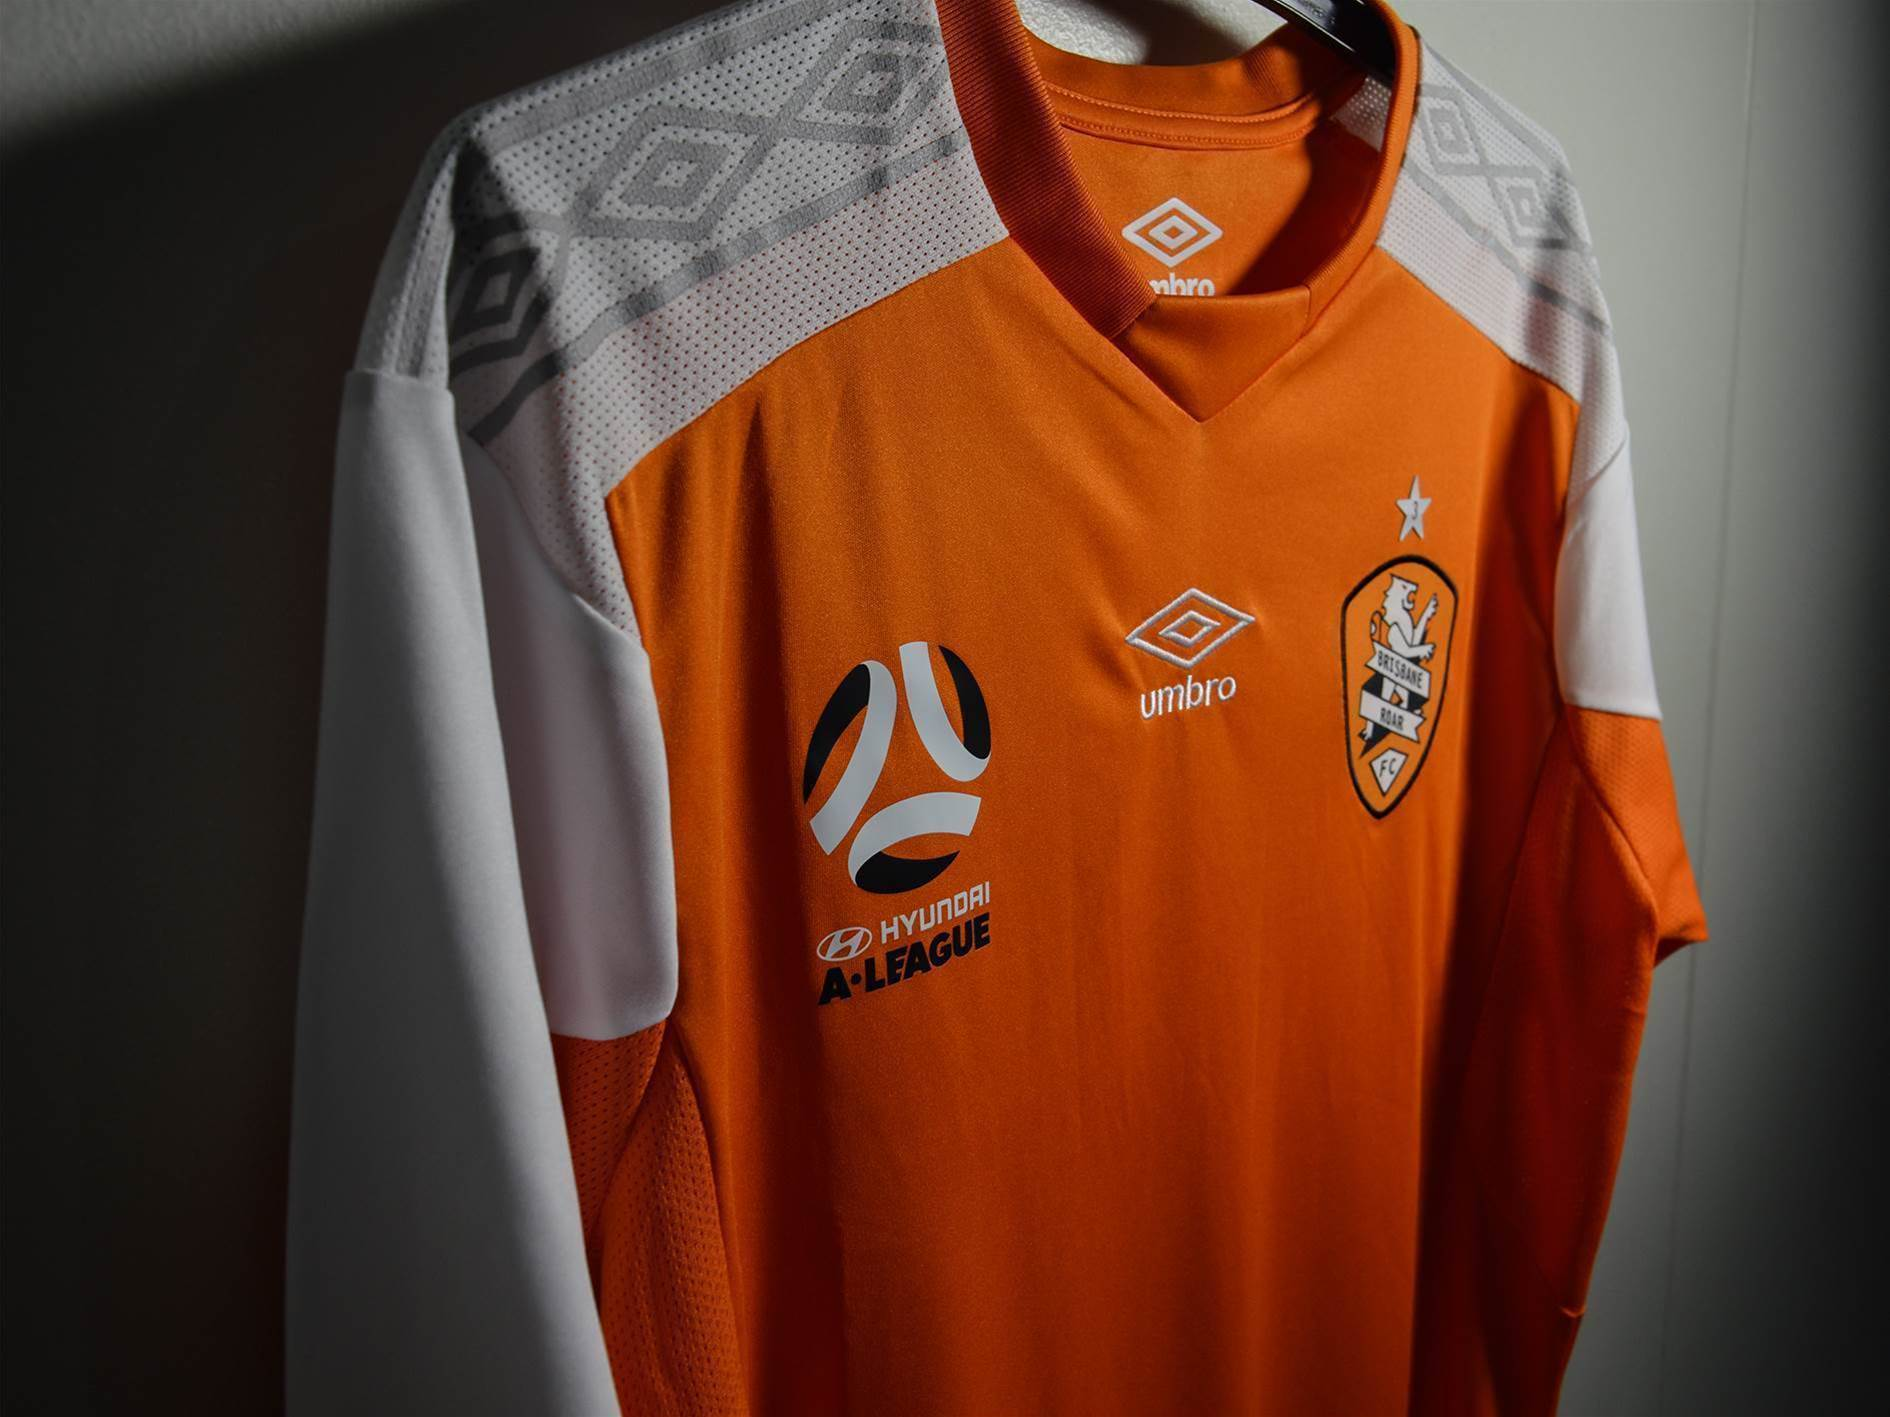 Umbro's latest Brisbane Roar kit